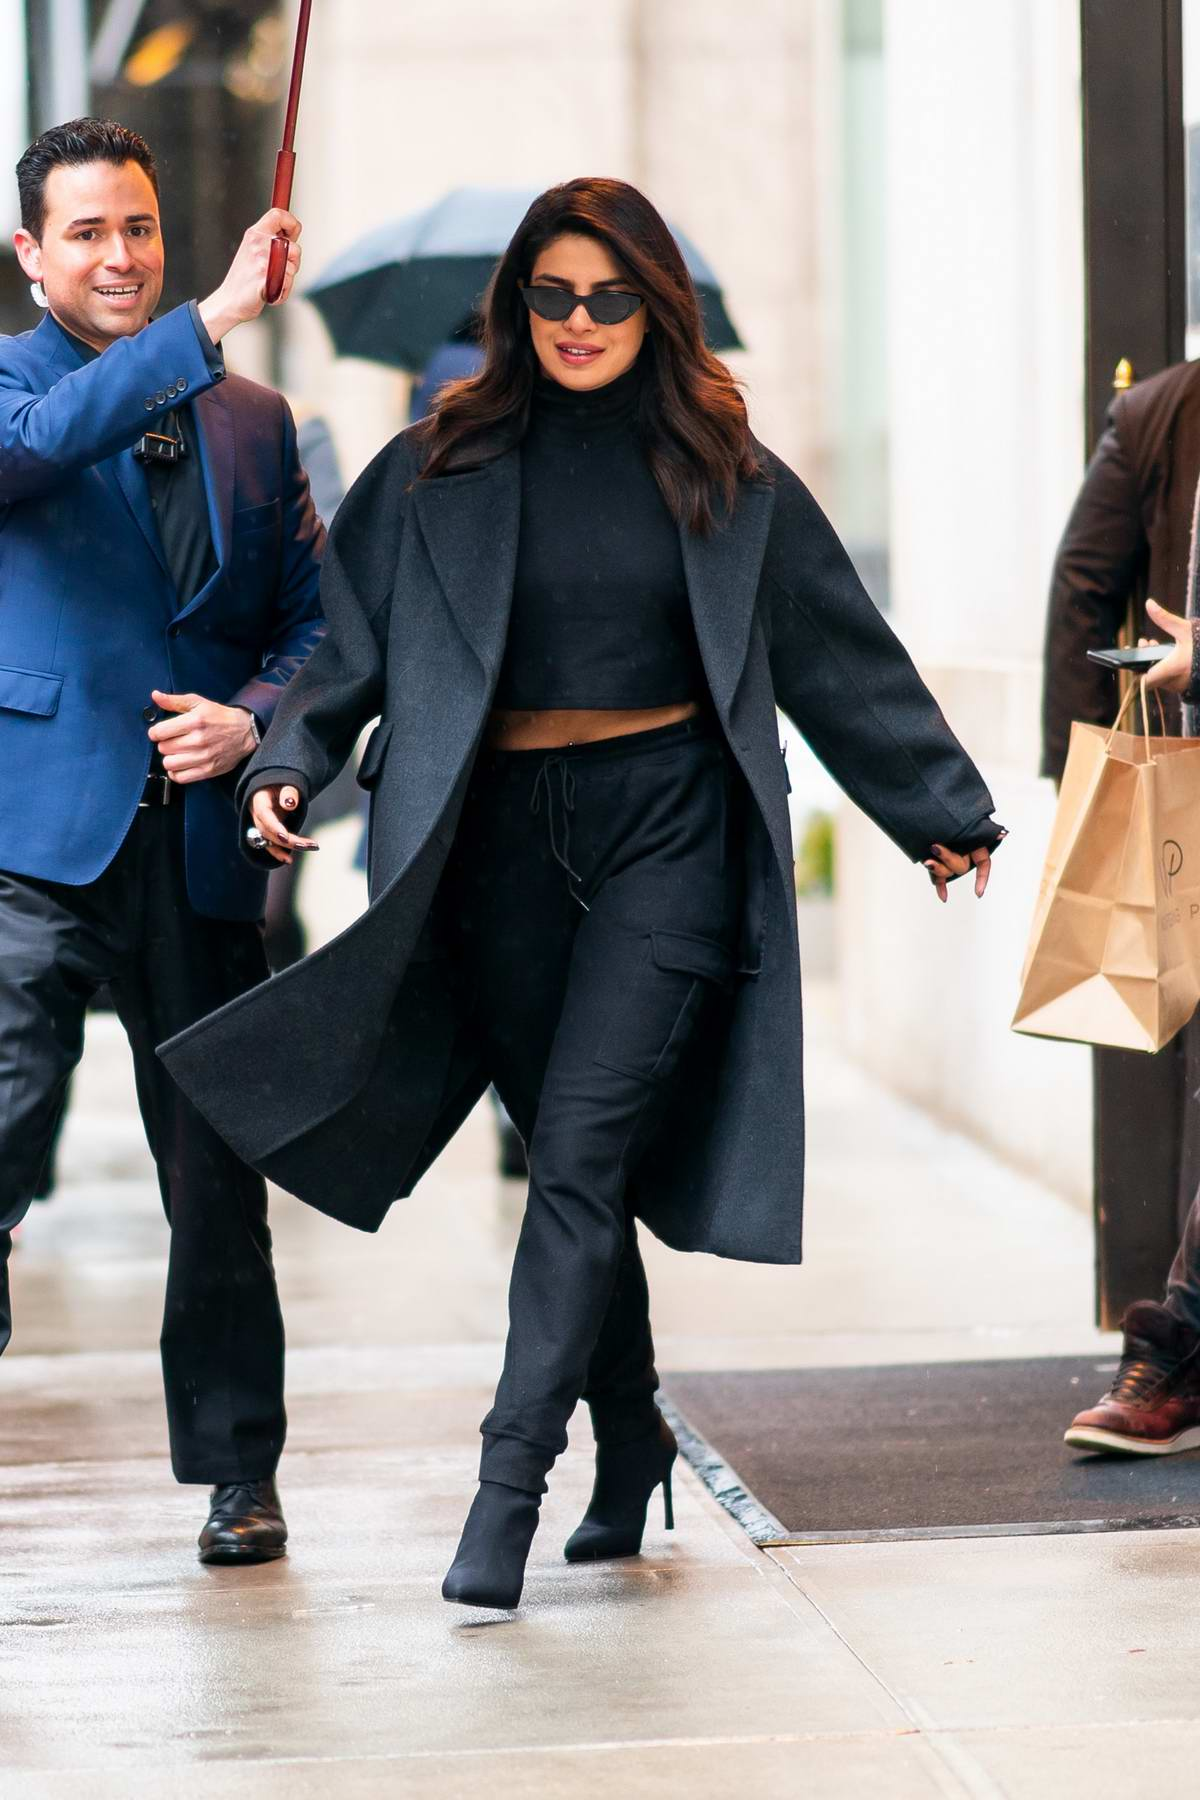 Priyanka Chopra rocks a dark grey wool coat, cropped black turtleneck, matching sweats, and black boot while out in New York City